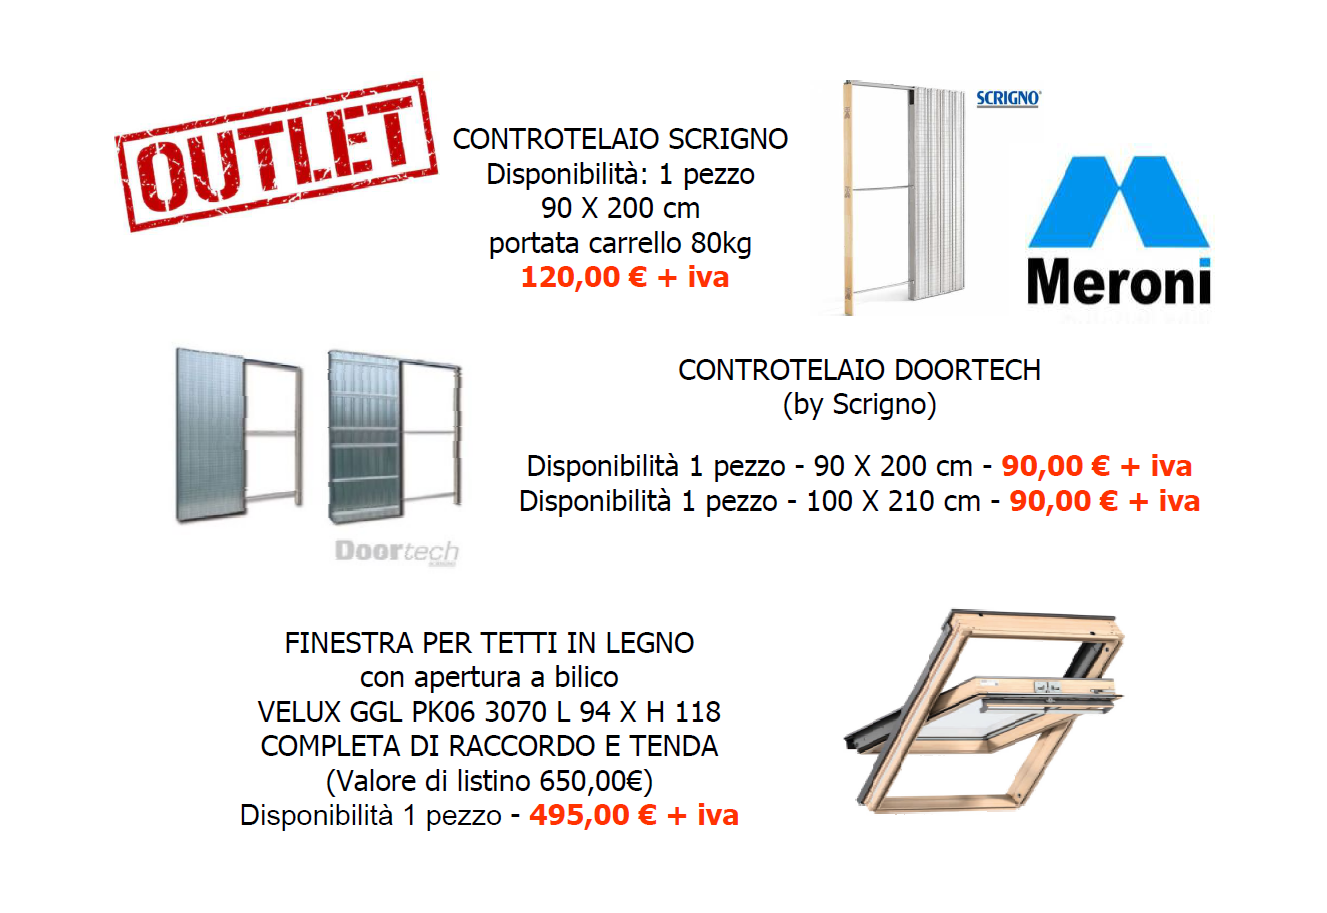 Outlet Luglio 2018 BIS